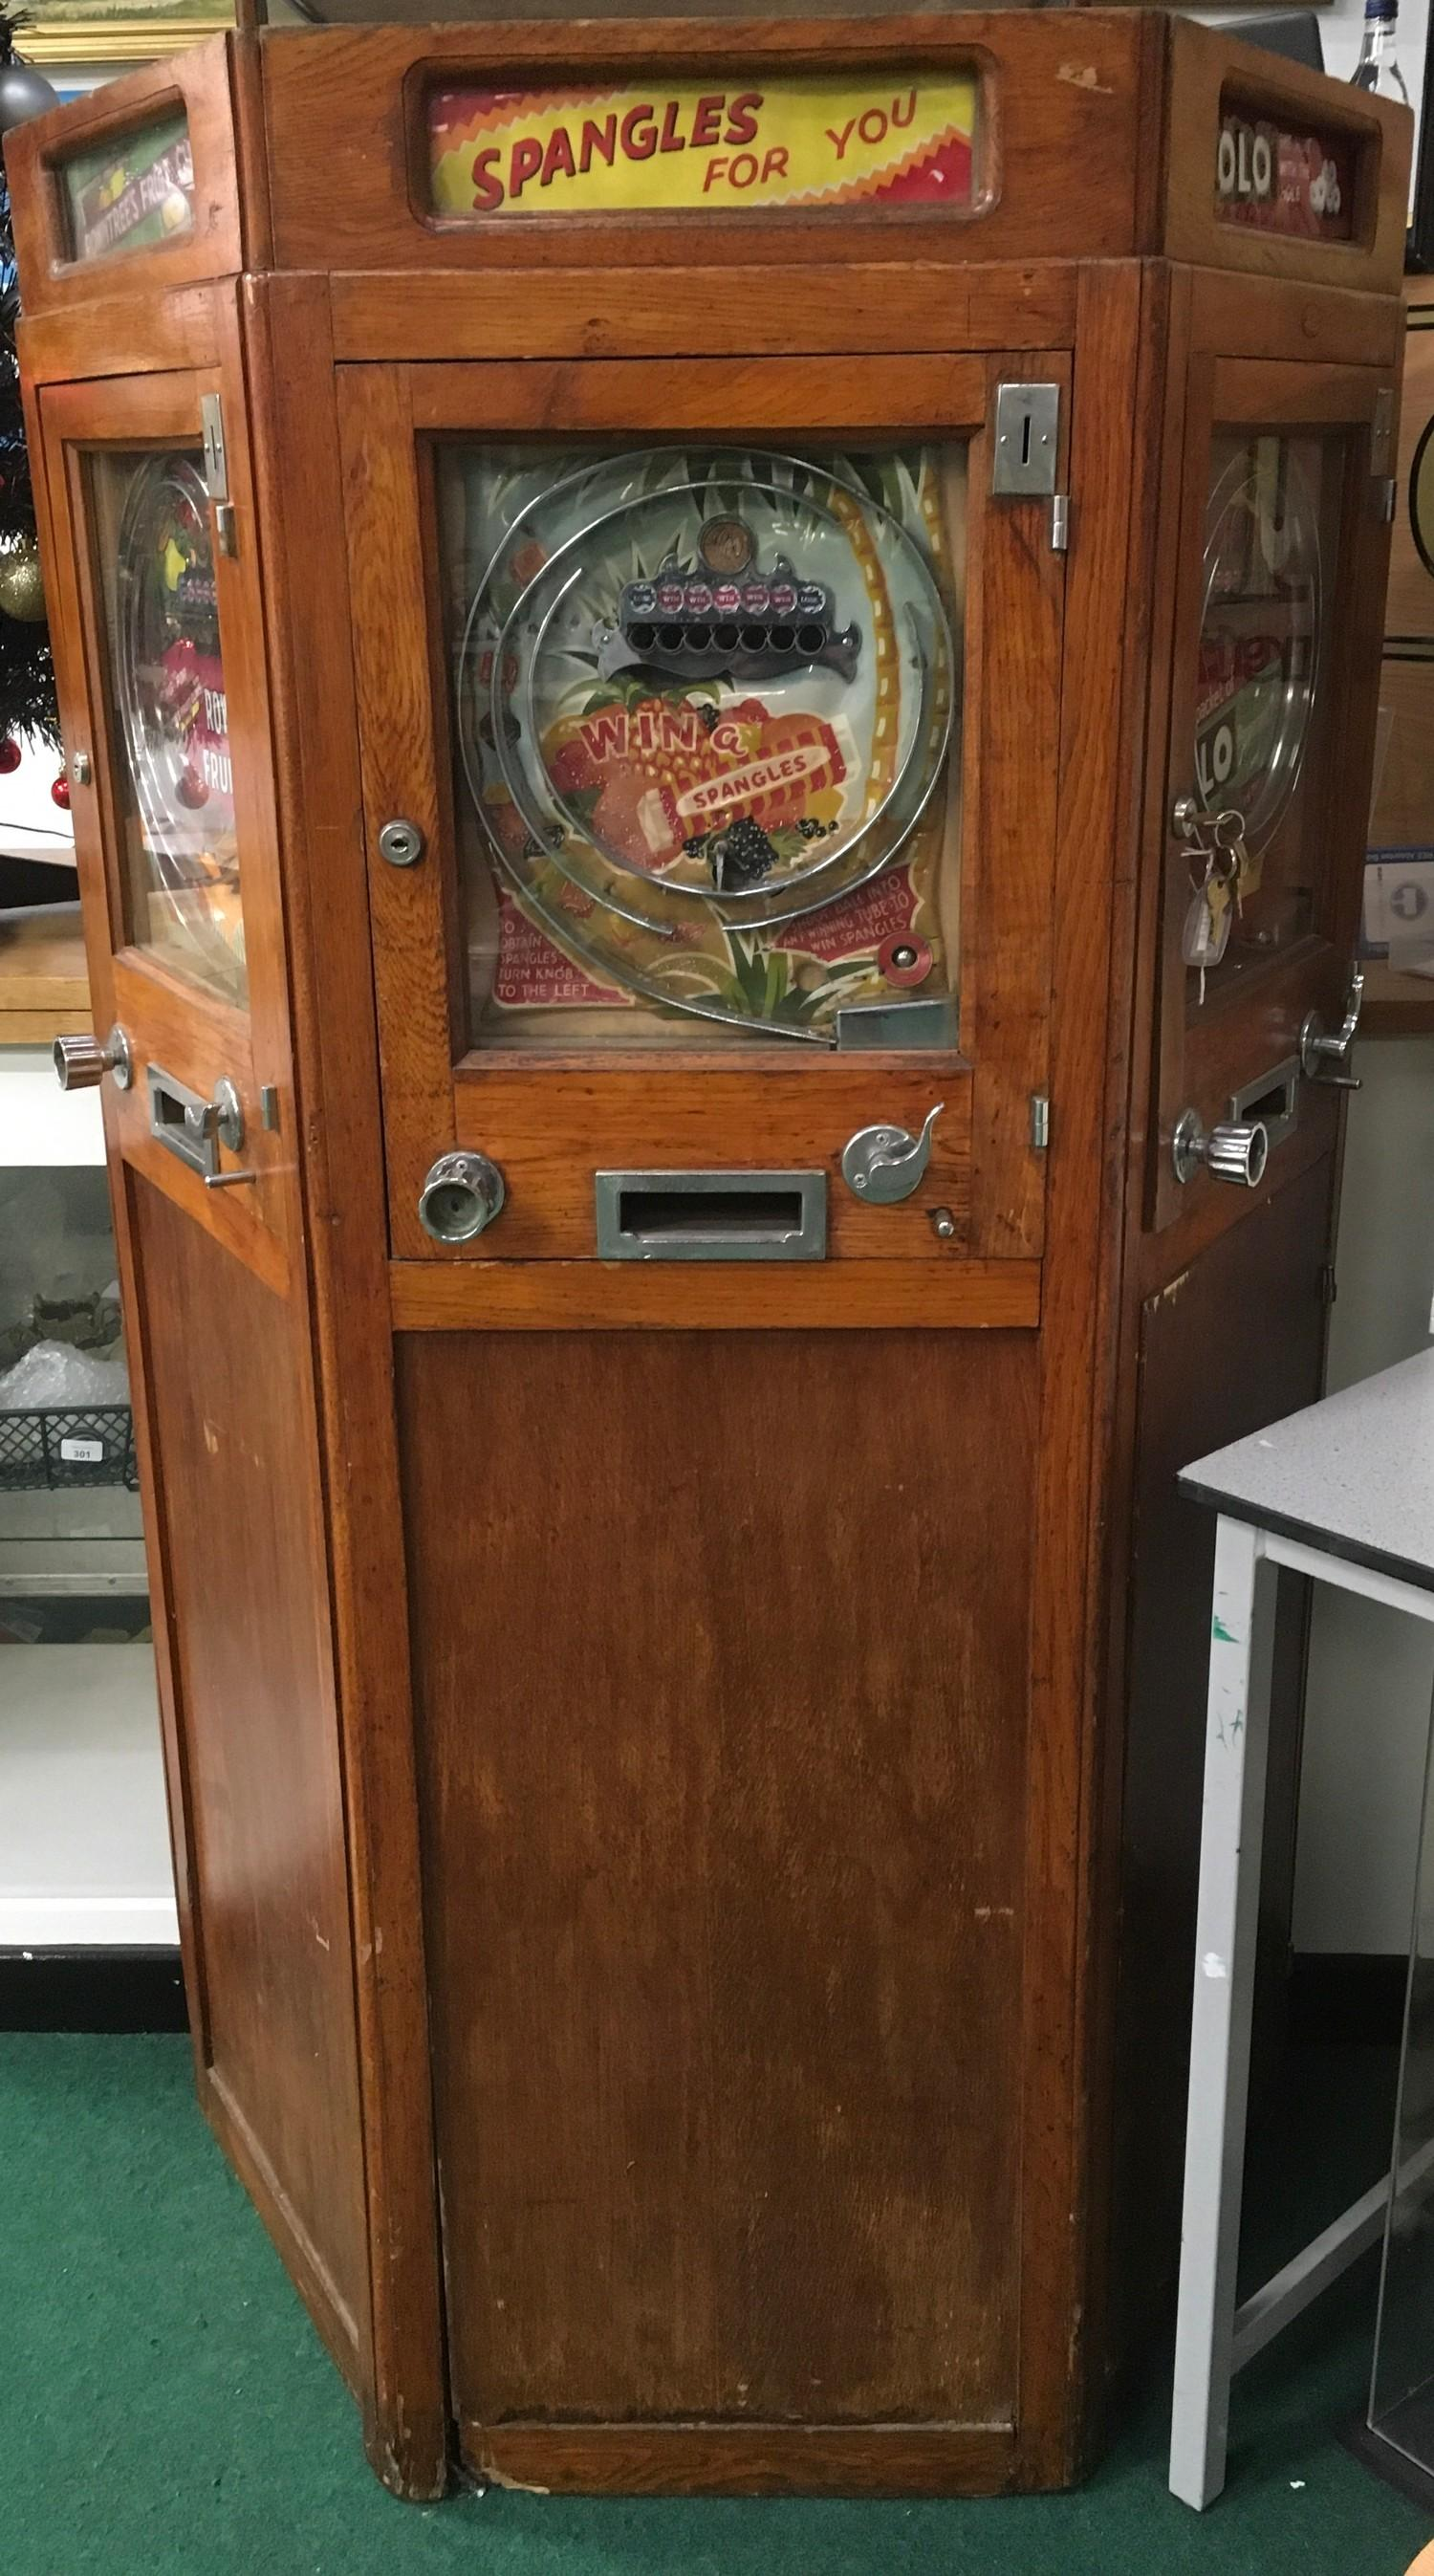 Ruffler & Walker Allwin 3 in 1 case slot machine. Originally working on old 1d But